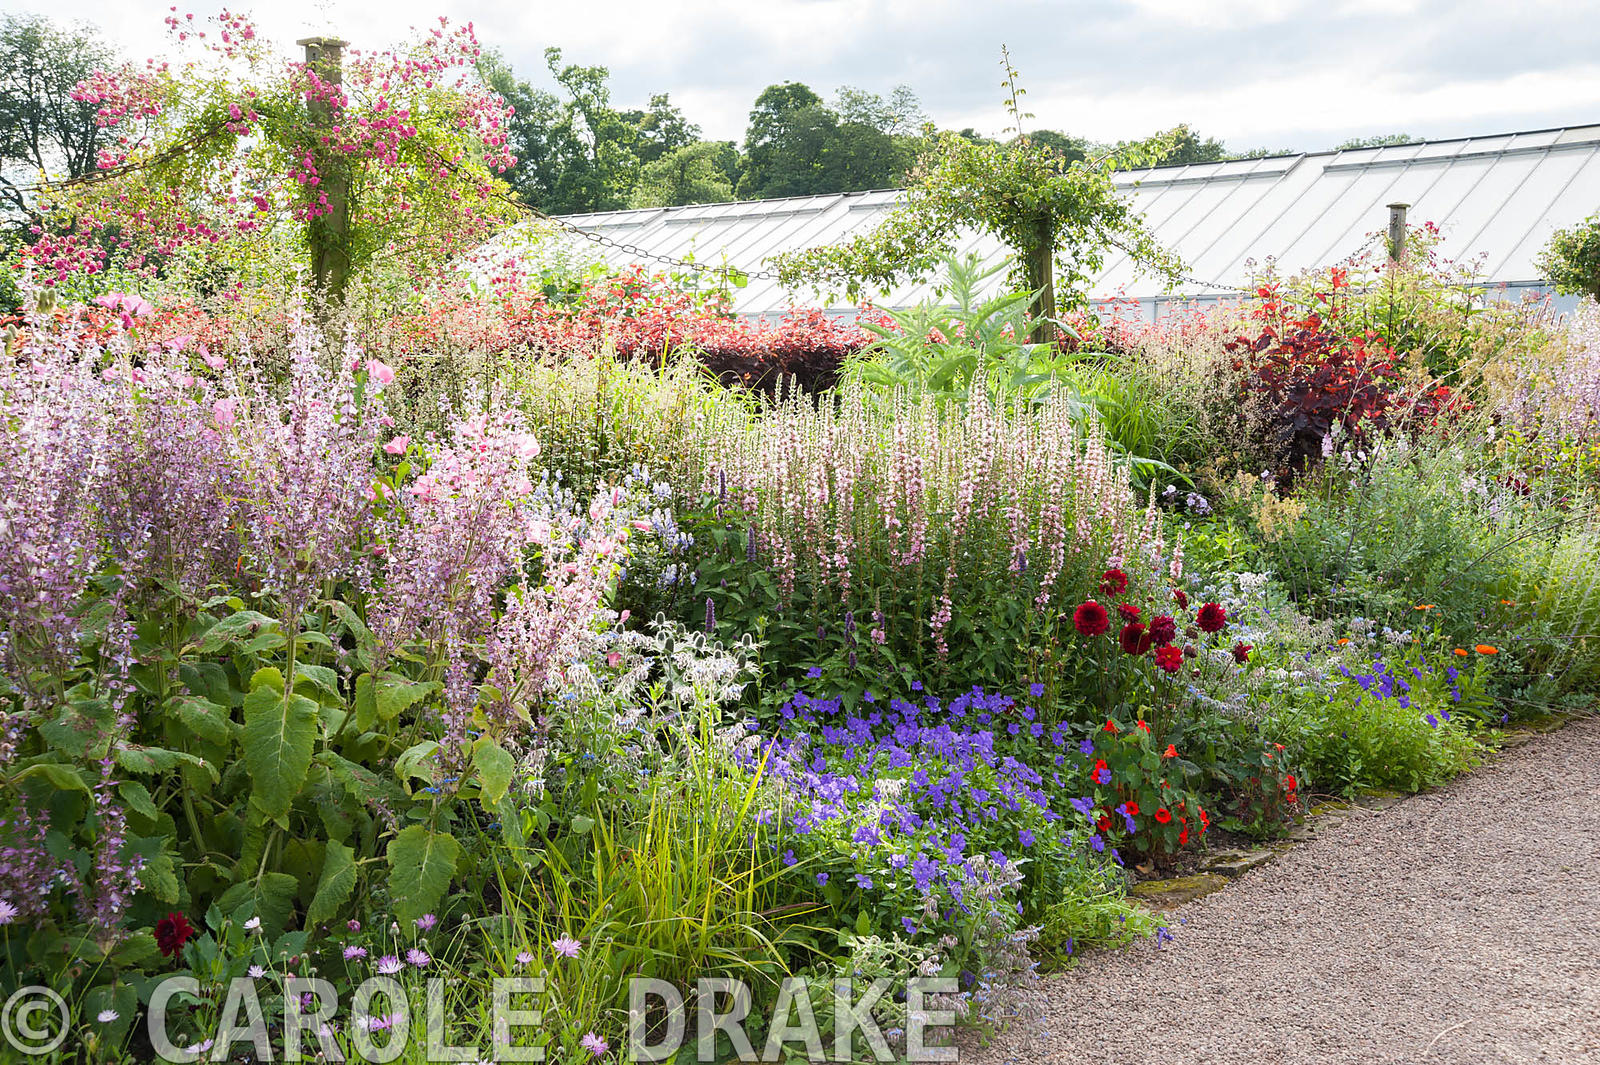 Border near the glasshouses includes tall Salvia turkestanica, geraniums, eryngiums, pink mallows, penstemons and Cotinus cog...